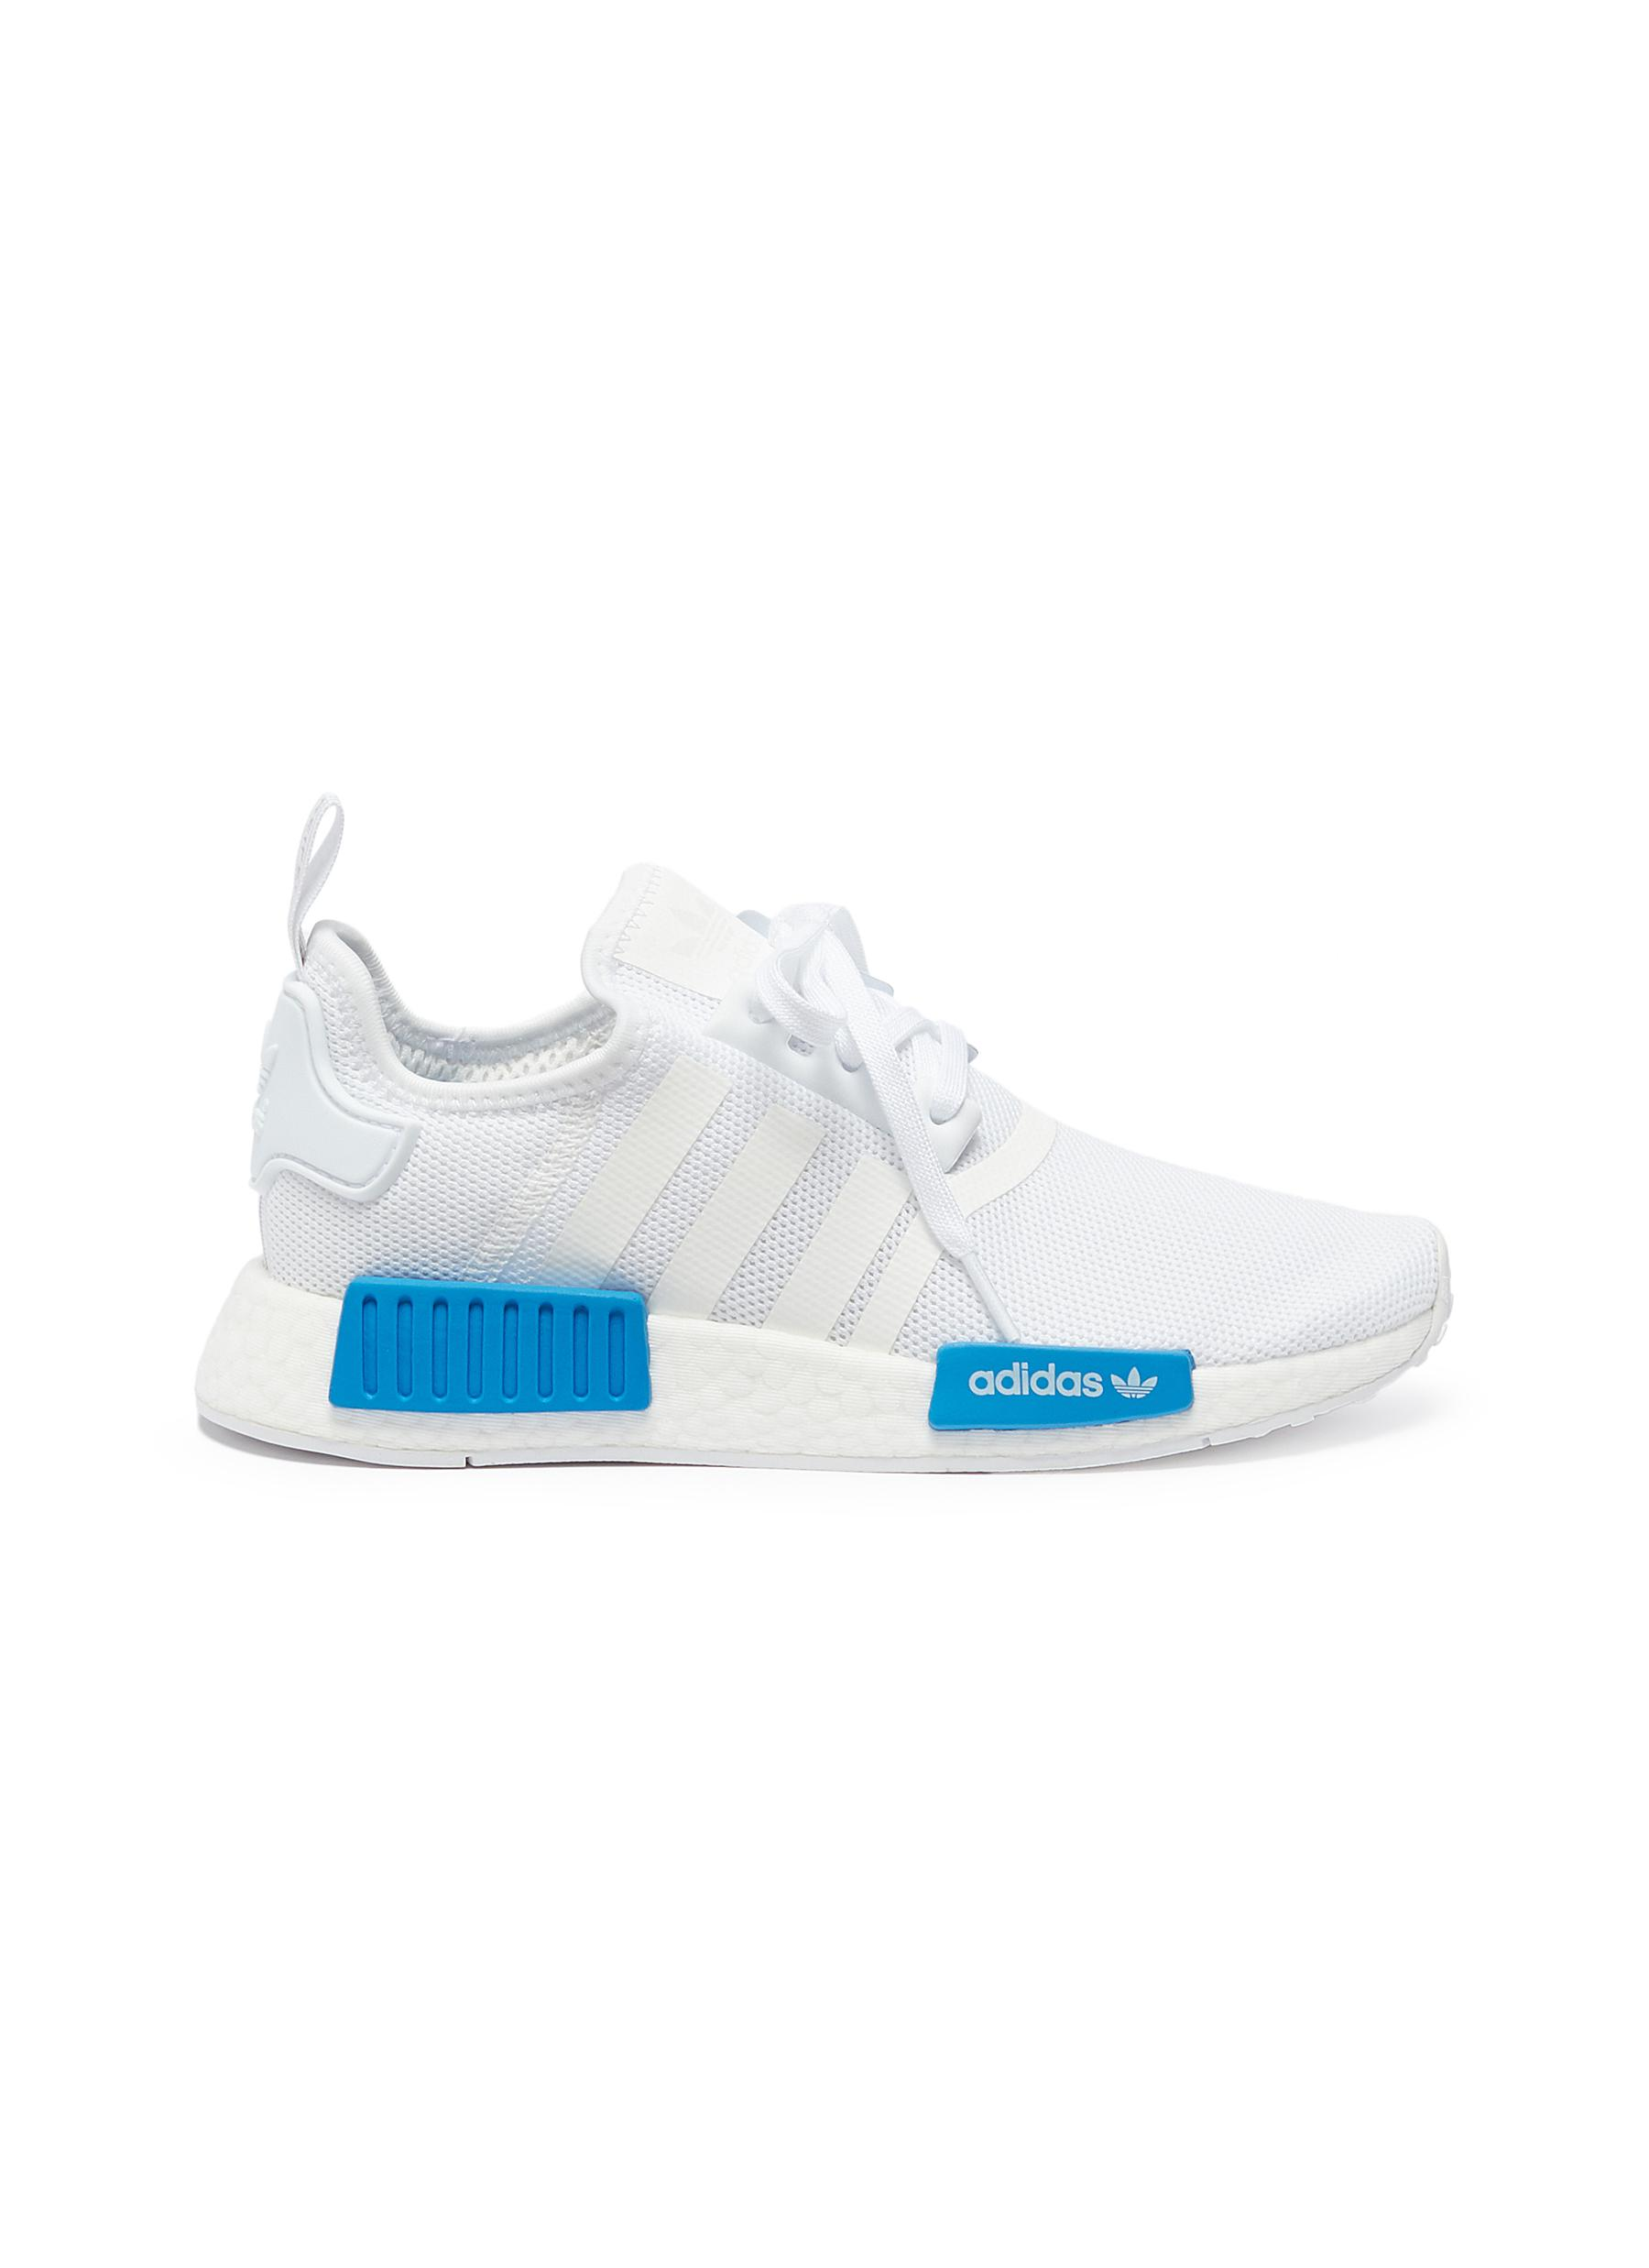 09cb8716c8dbf Main View - Click To Enlarge - Adidas -  NMD R1  mesh boost™